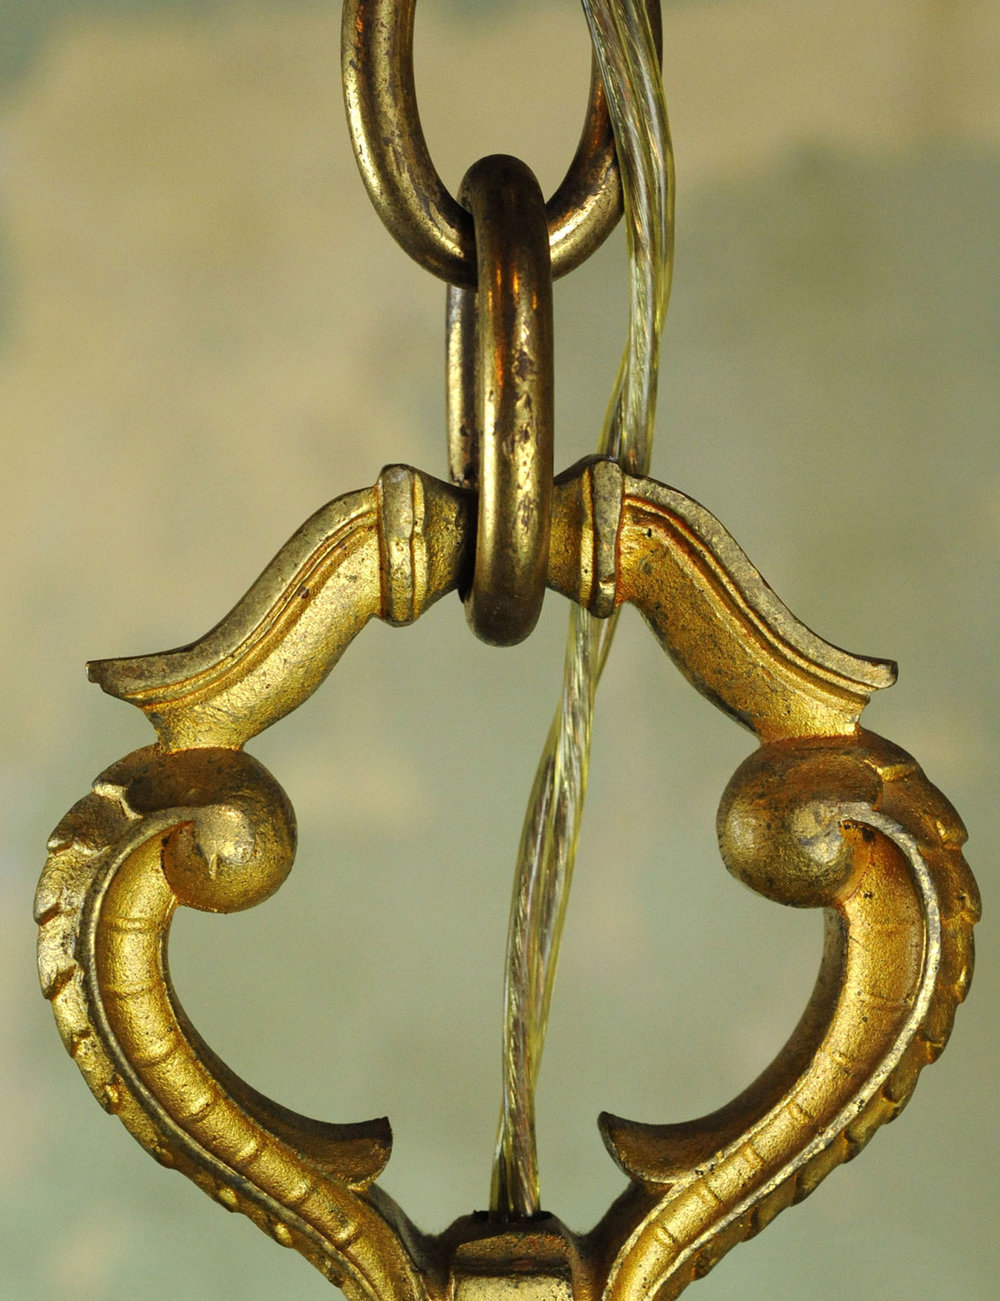 46926-brass-chandelier-chain-detail.jpg